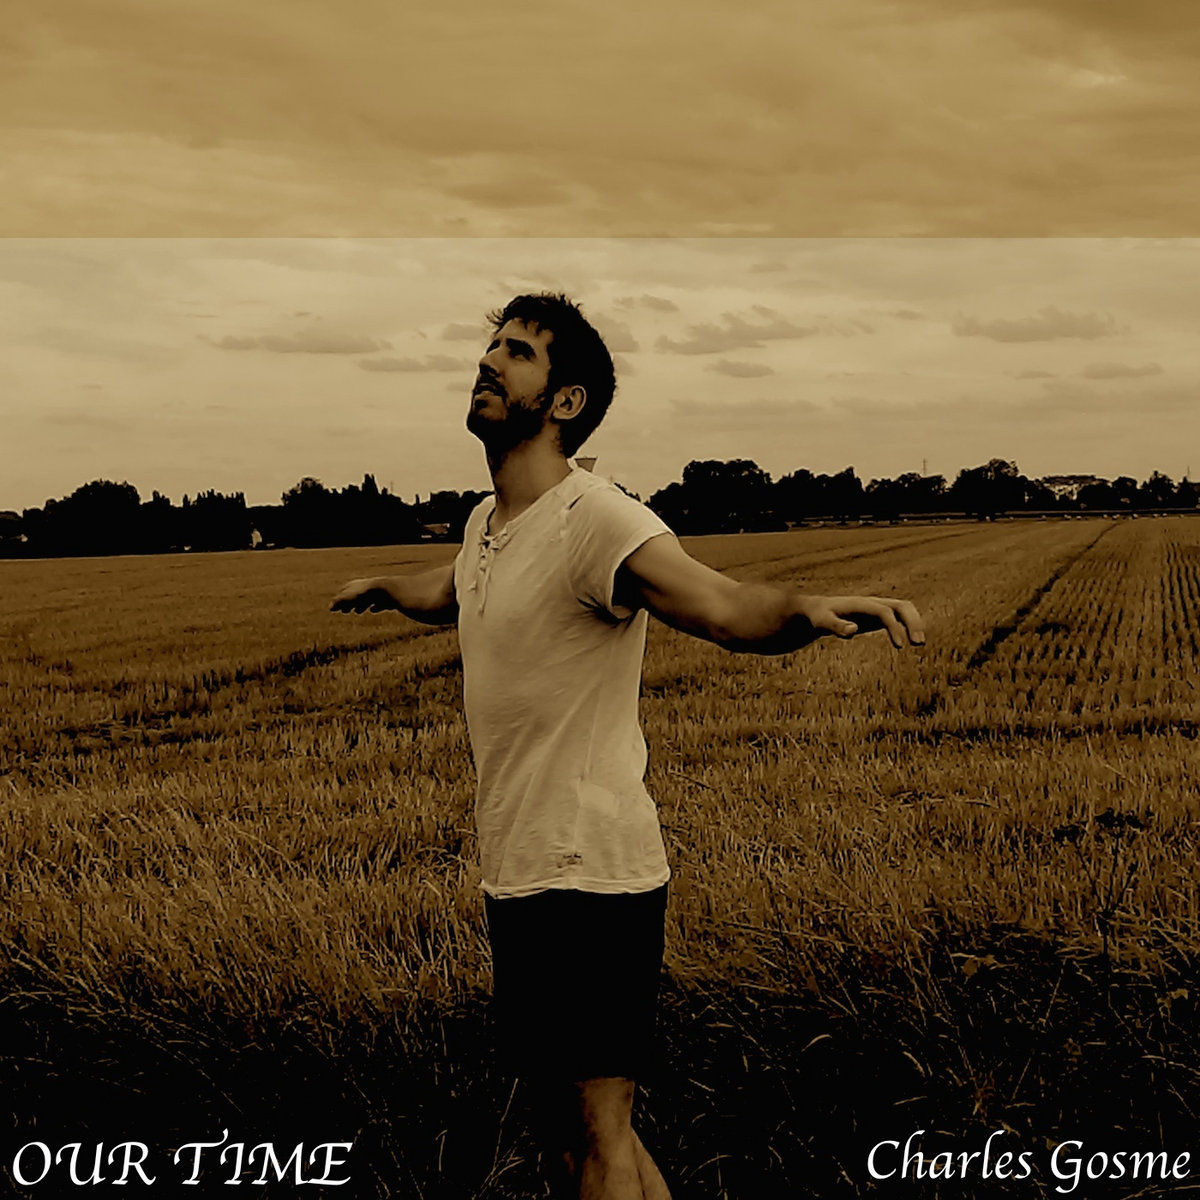 Our Time by Charles Gosme